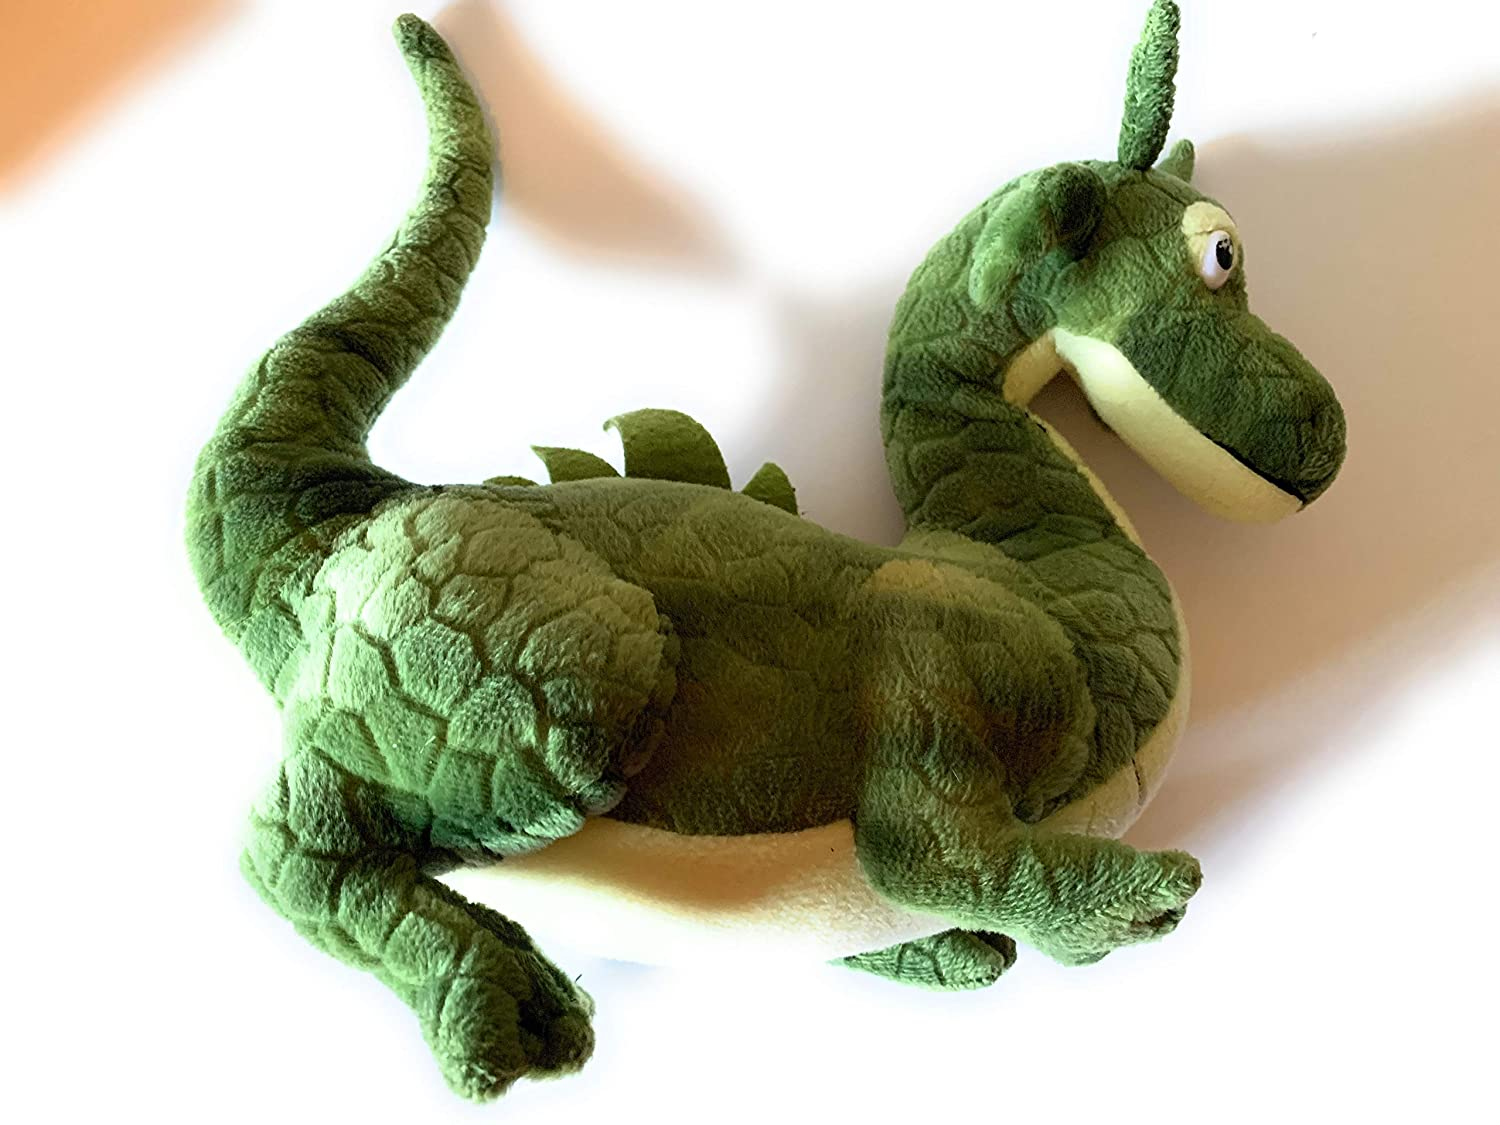 Weighted stuffed animal weighted buddy sensory toy dragon 2 lbs